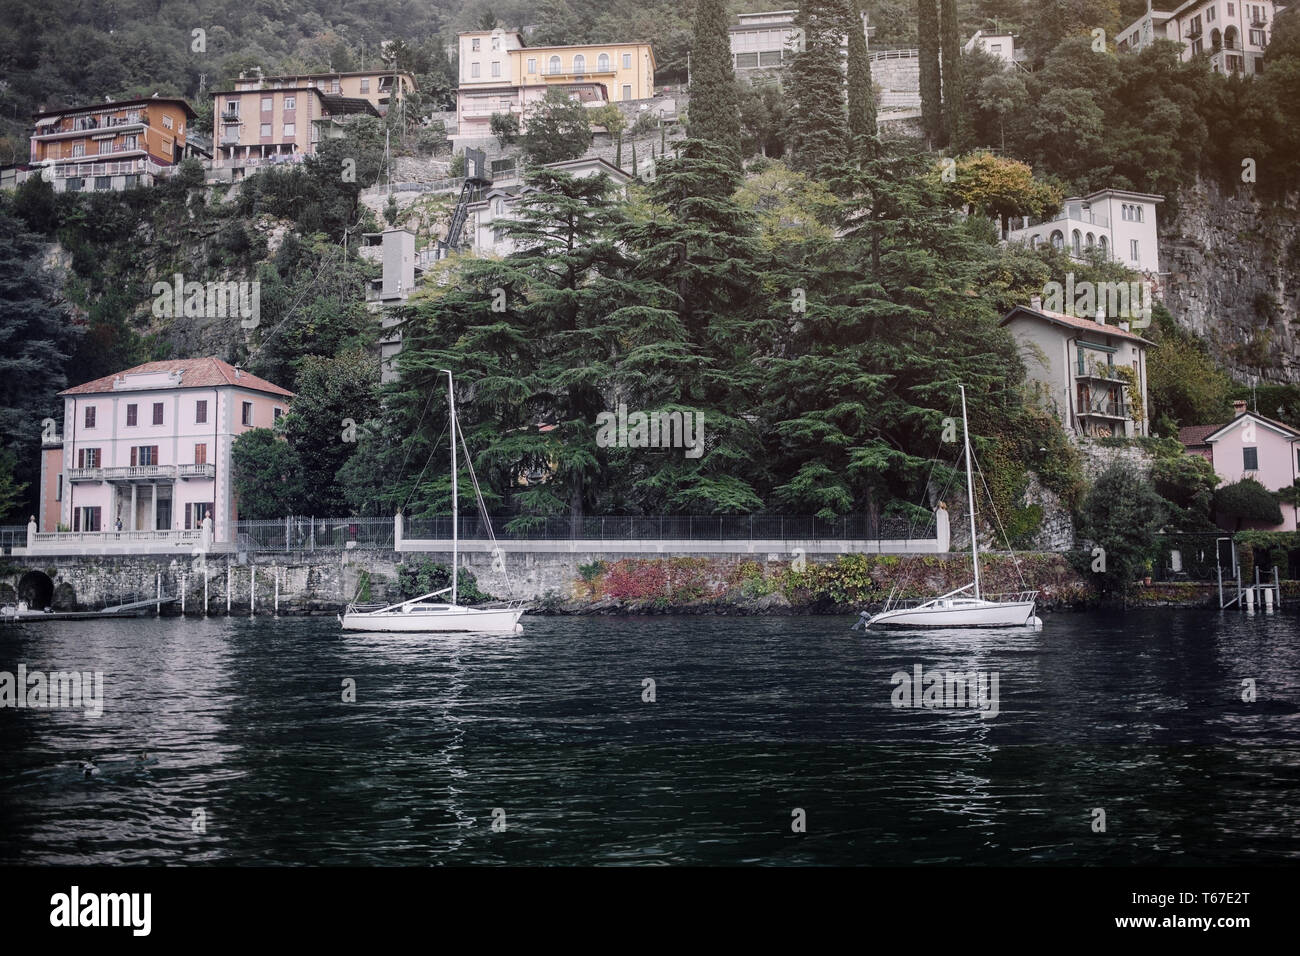 Villages on the hills in the evening. Old Village on Lake Como, Italy.Como lake is the most beautiful city around the lake.This is the most beautiful  Stock Photo